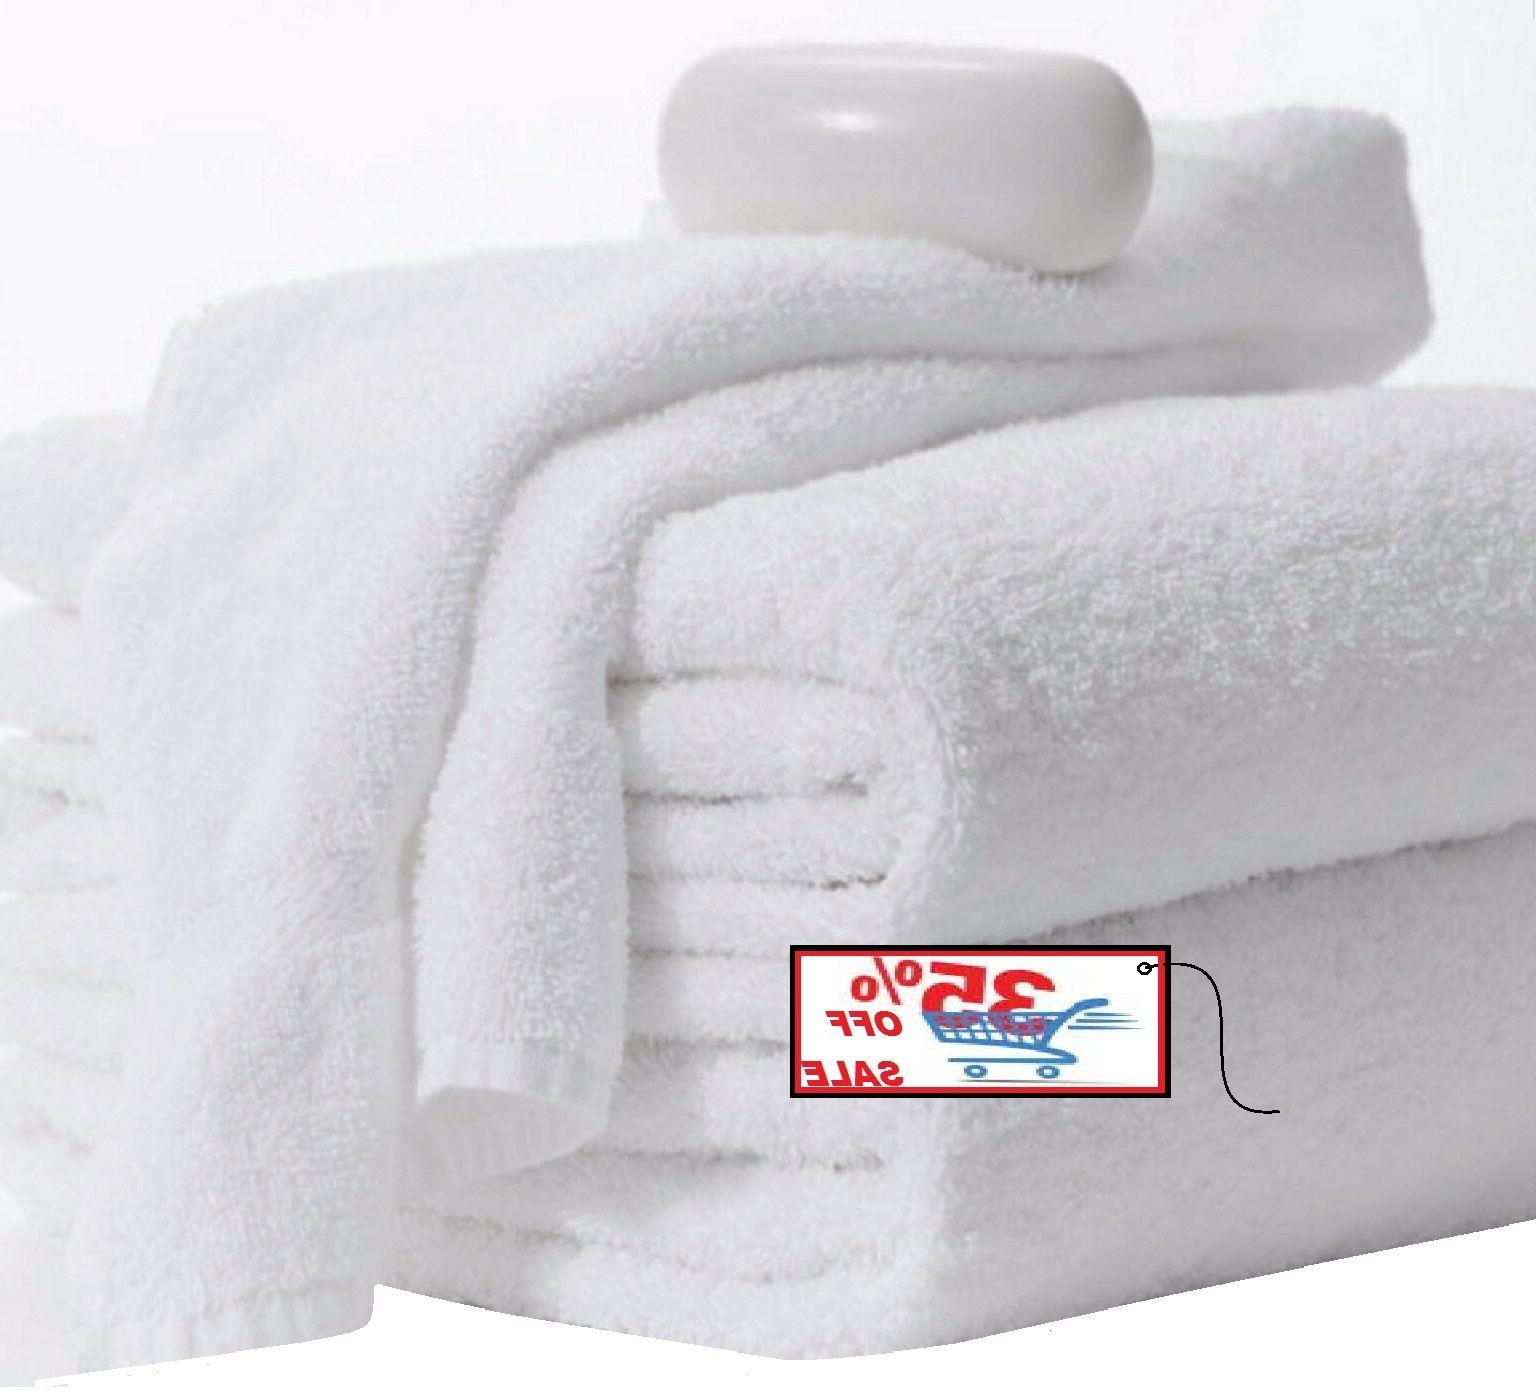 new bath towels 3 pack 22x44 inches white 6lbs 100% cotton g